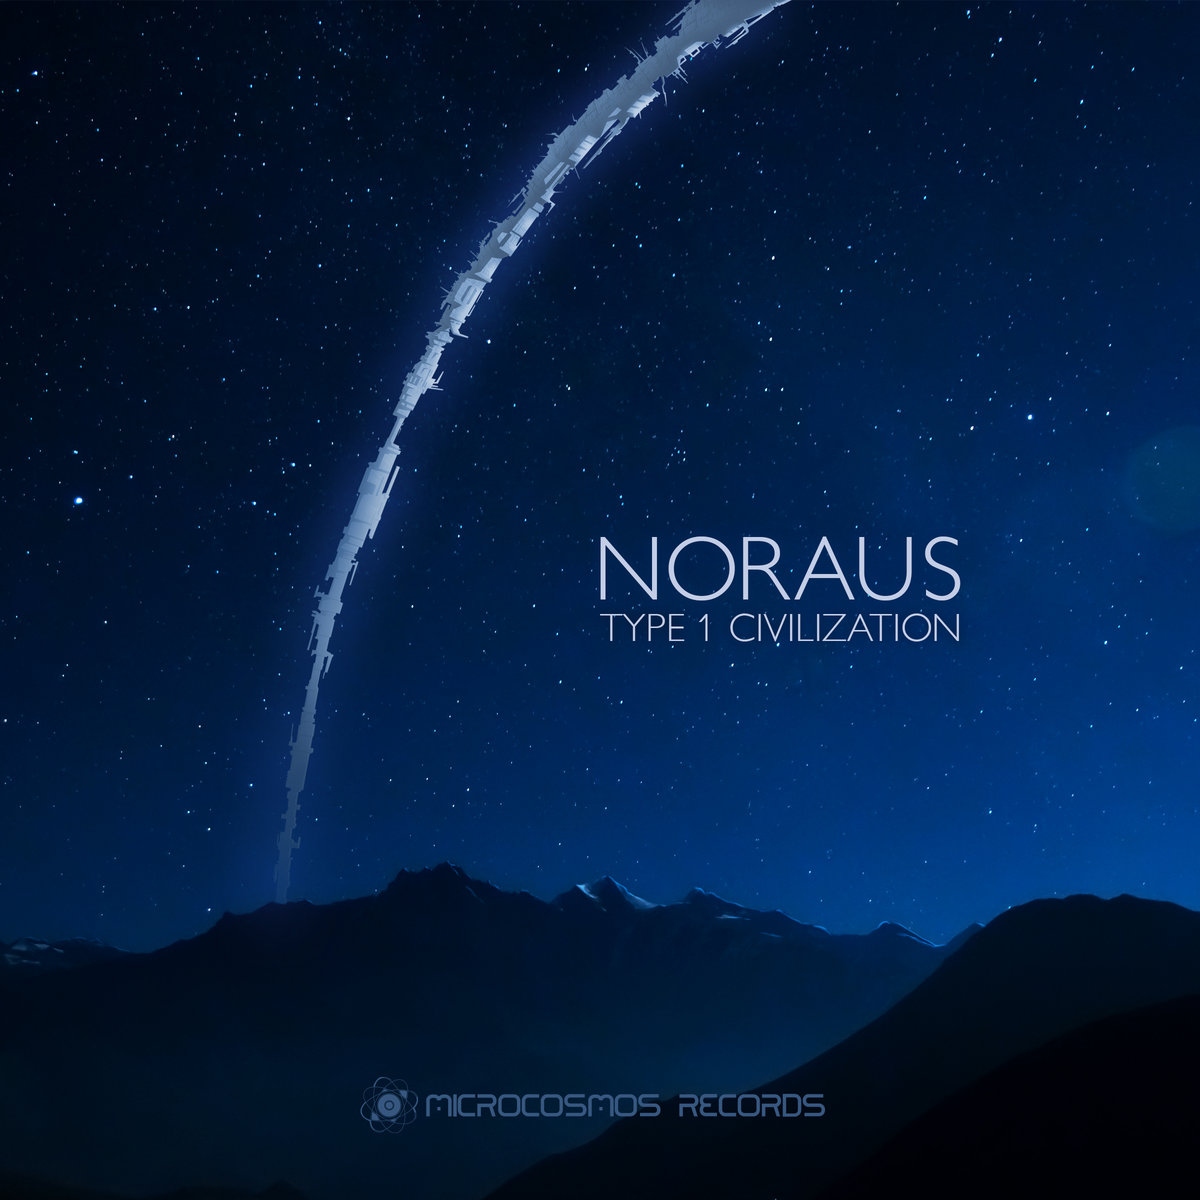 Noraus - Air A.M. @ 'Type 1 Civilization' album (ambient, chill-out)